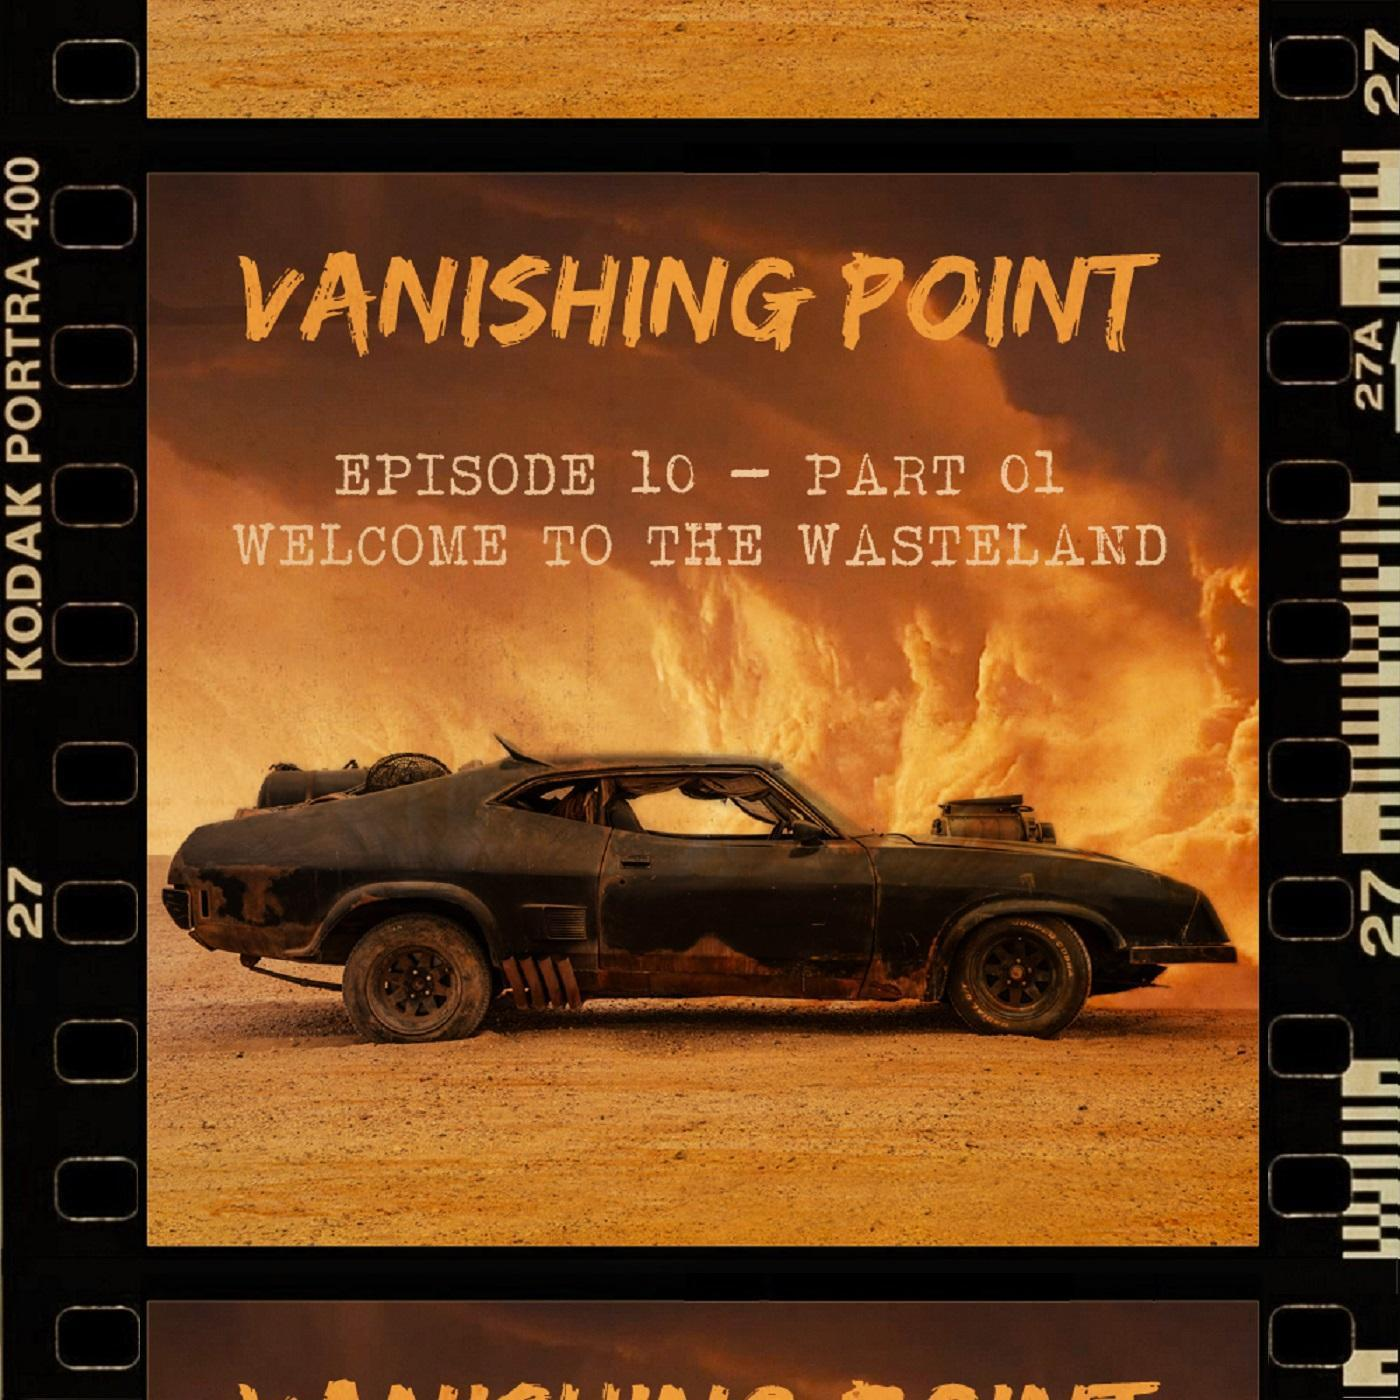 VANISHING POINT #10 part. 1 - Welcome to the Wasteland AVEC MELVIN ZED